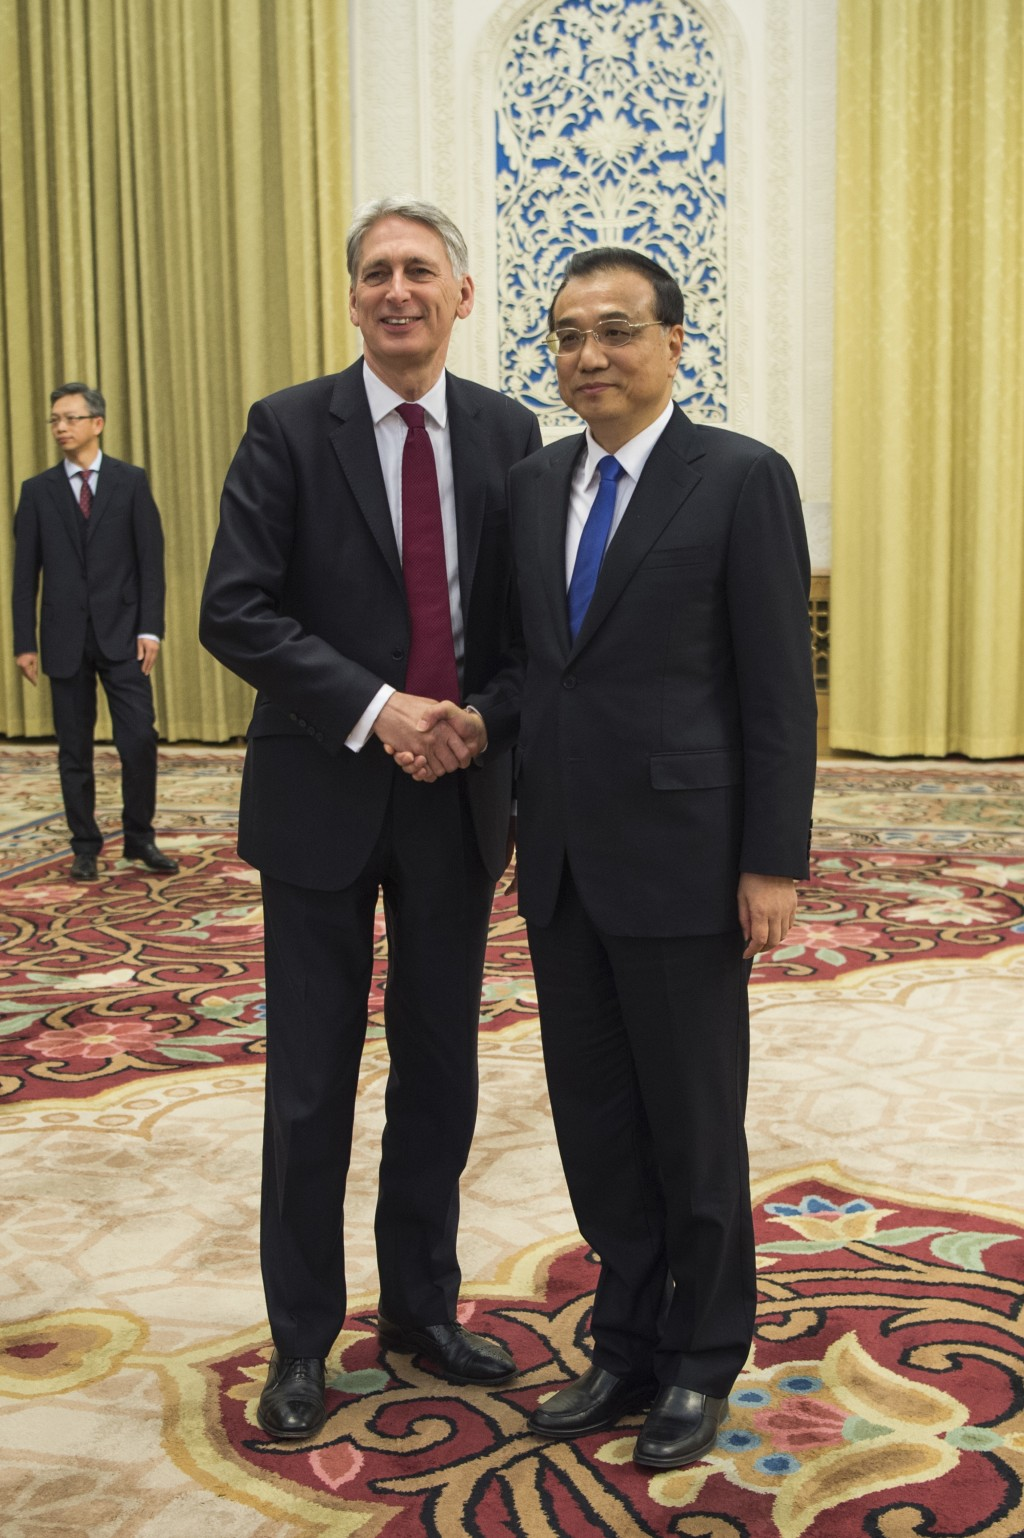 China's Premier Li Keqiang, right, meets Britain's Chancellor of the Exchequer Philip Hammond at the Great Hall of the People in Beijing, Friday, Dec.